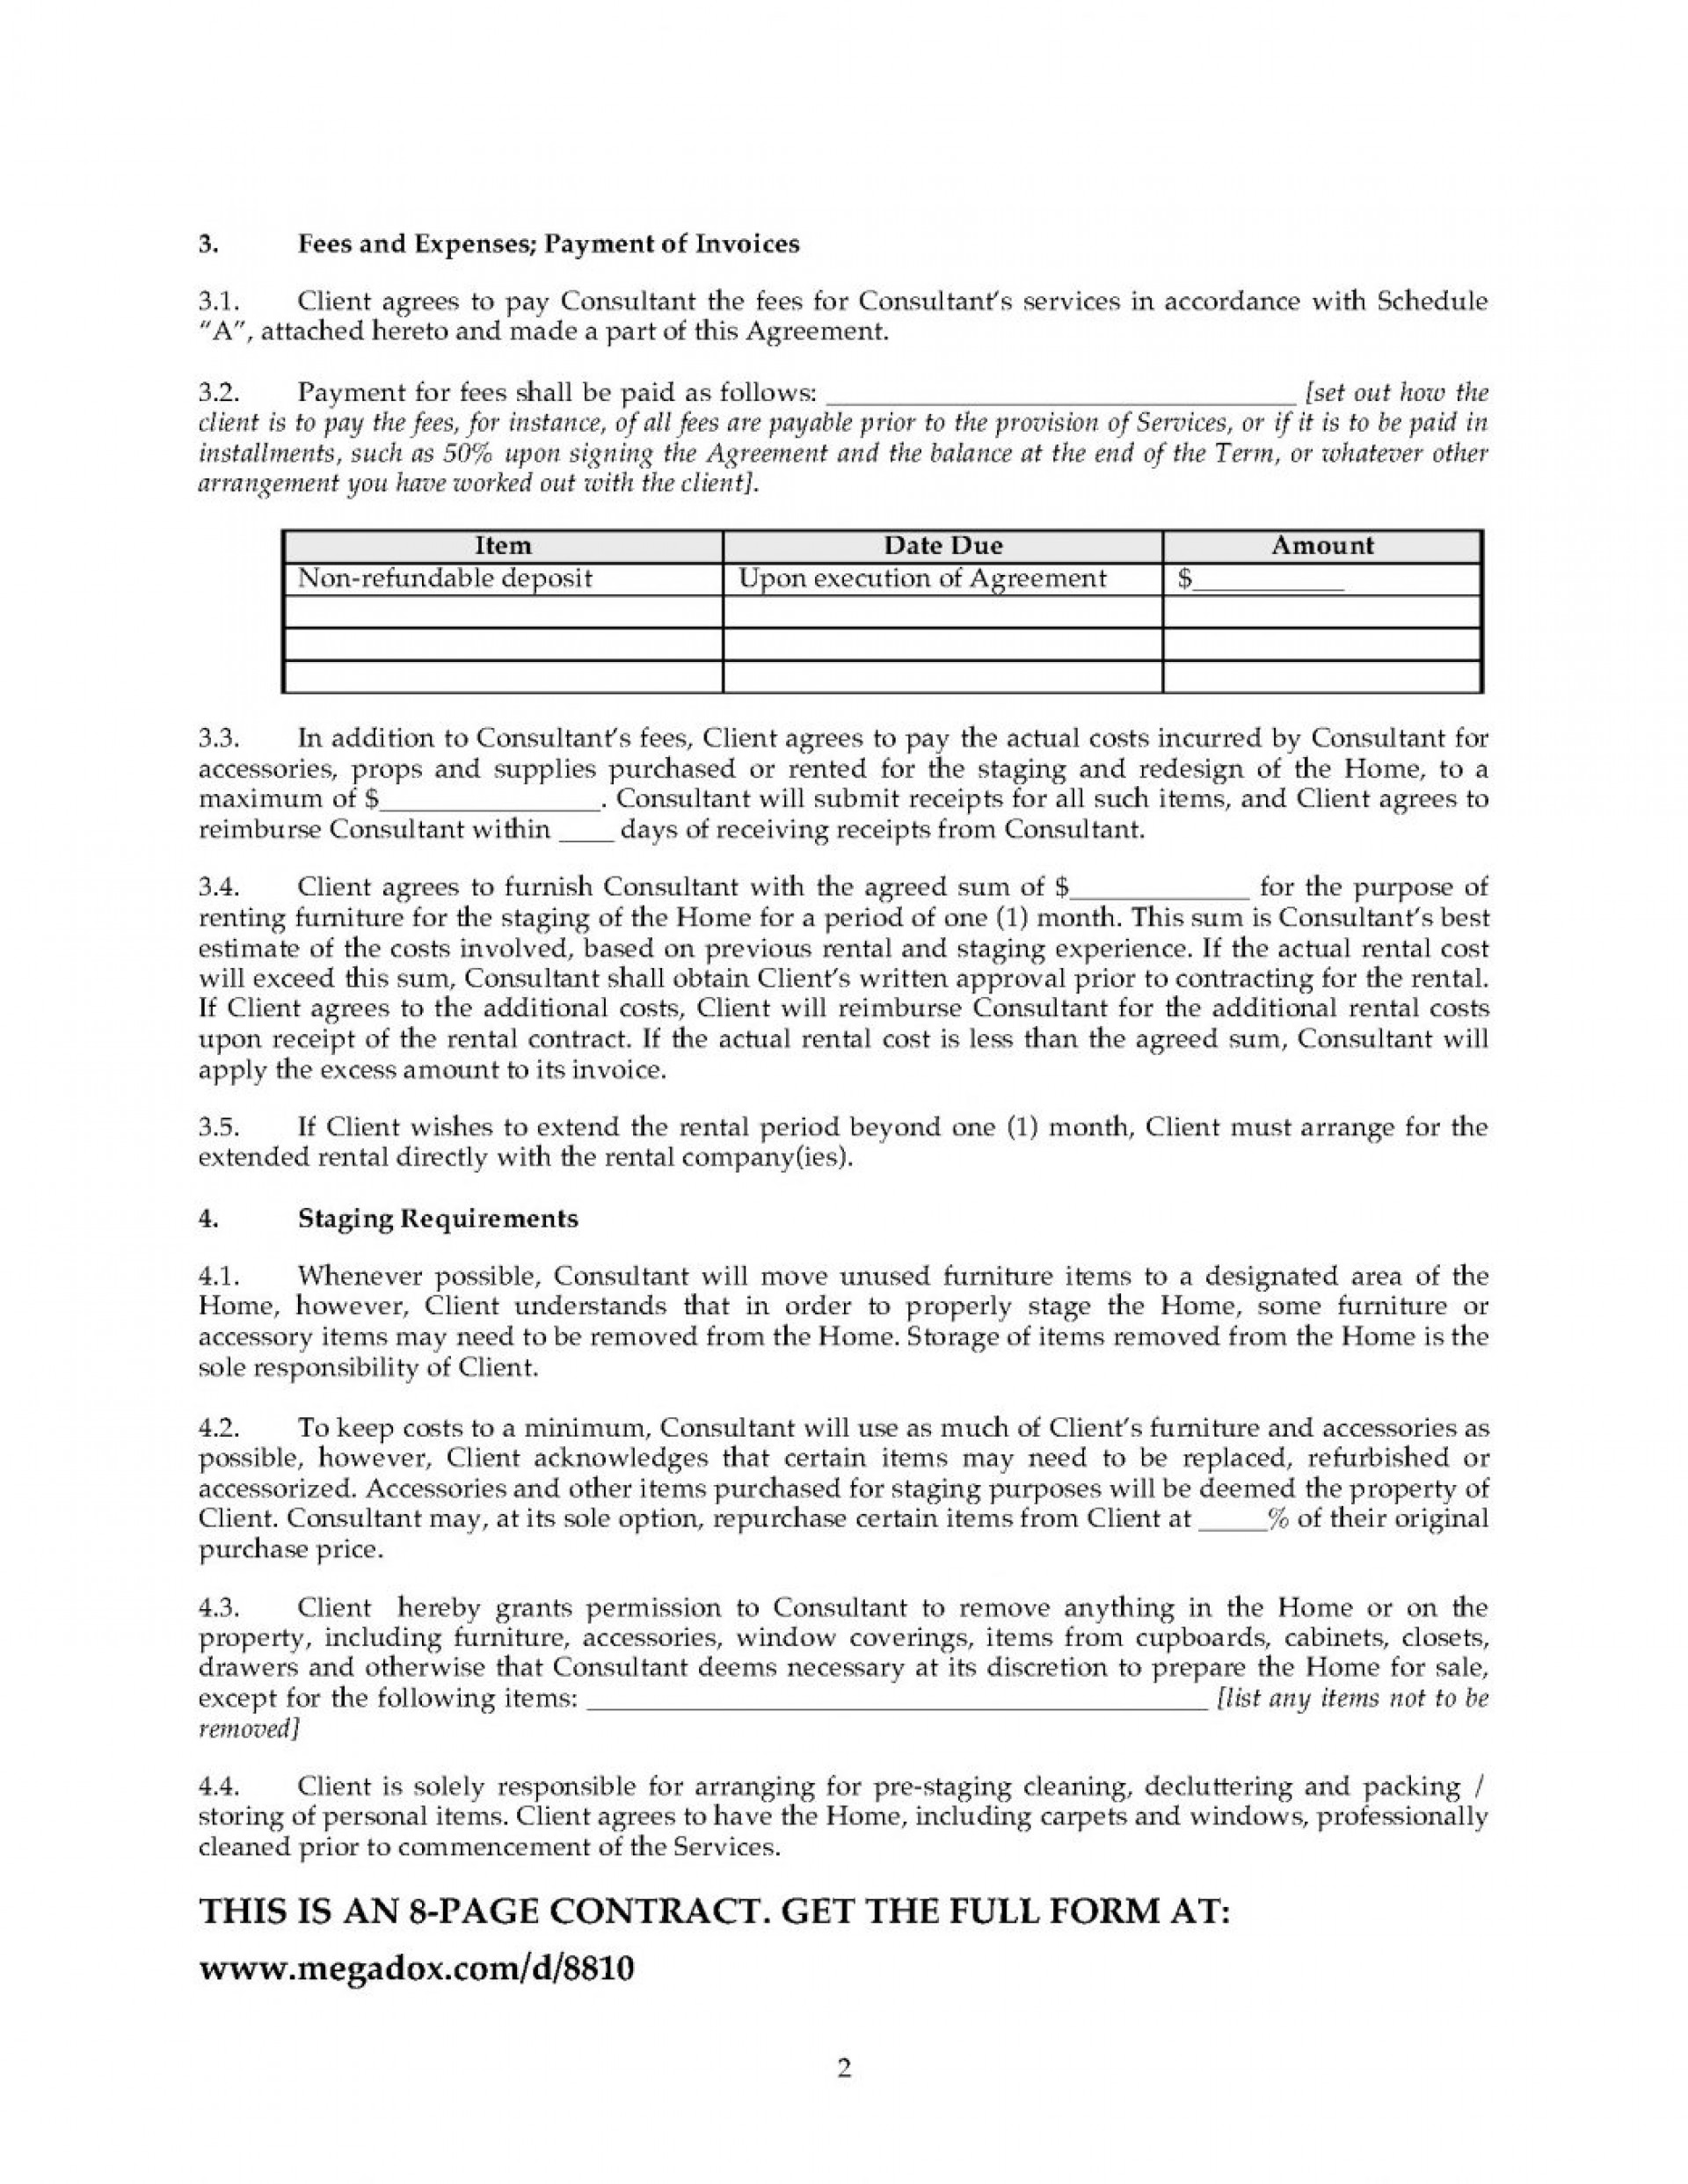 005 Example Ofpendix In Research Paper Buy Geometry Essay Ona Sample Furniture Purchase Invoice Template Home Staging Services Contract Legal Forms And Business R Format 1048x1356 Stupendous Appendices Appendix Meaning 1920